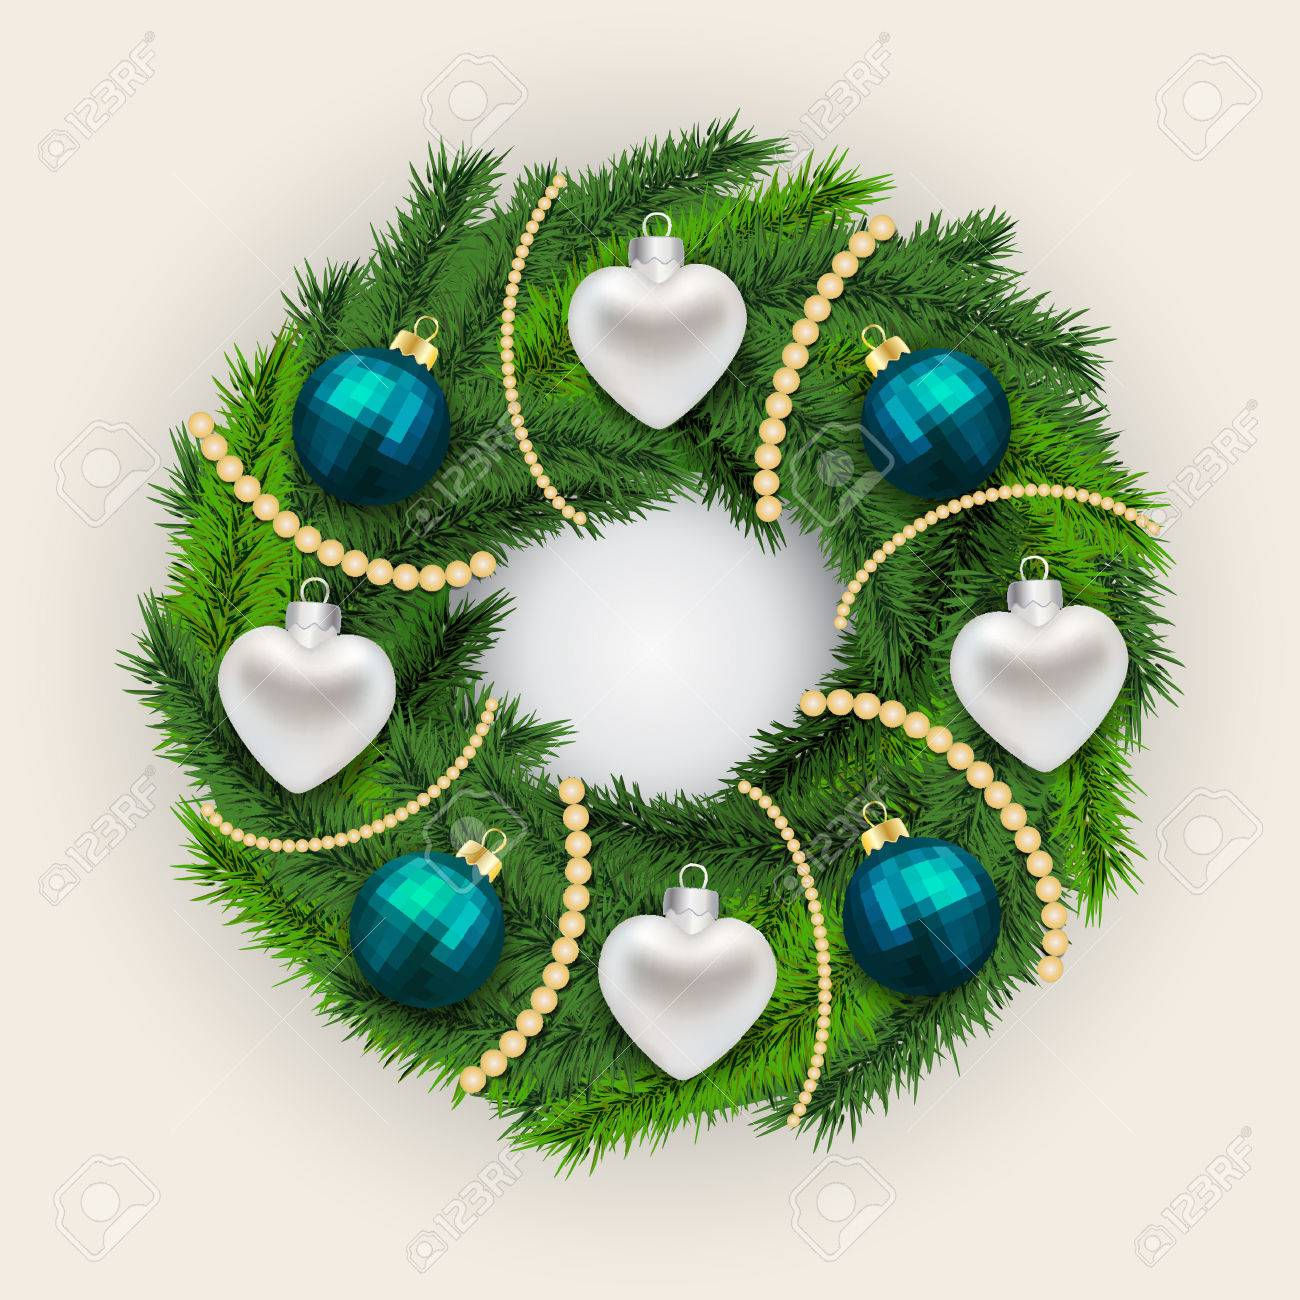 Decorated Christmas pine wreath with alternating silver hearts and blue baubles interspersed with white beads on a grey background, vector illustration Stock Vector - 48104781